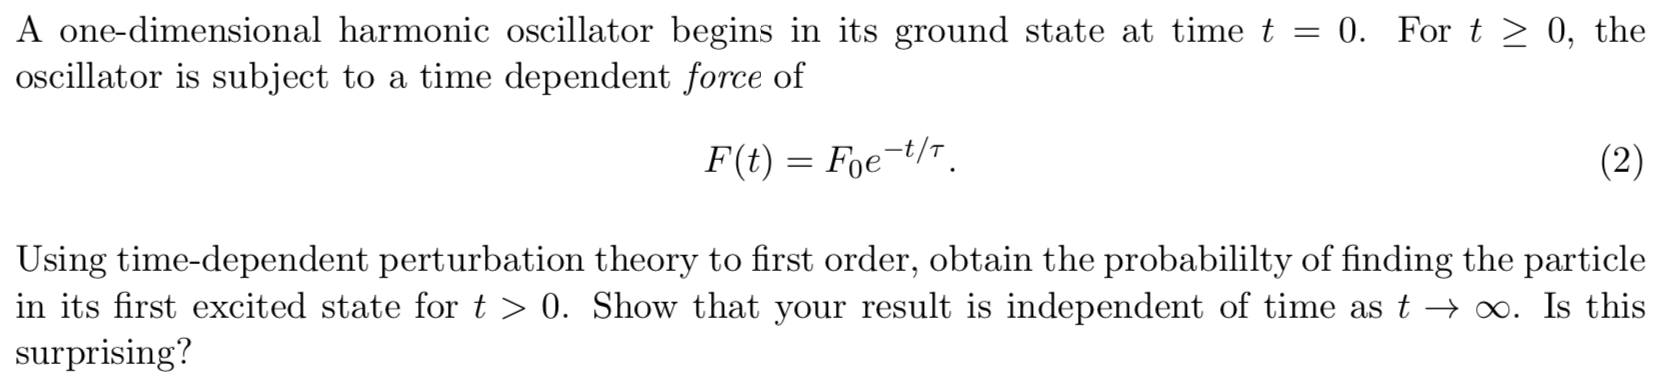 A one-dimensional harmonic oscillator begins in its ground state at time t = 0. For t > 0, the oscillator is subject to a time dependent force of F(t) Foet/ (2) Using time-dependent perturbation theory to first order, obtain the probabililty of finding the particle in its first excited state for t > 0. Show that your result is independent of time as t > o0. Is this surprising?